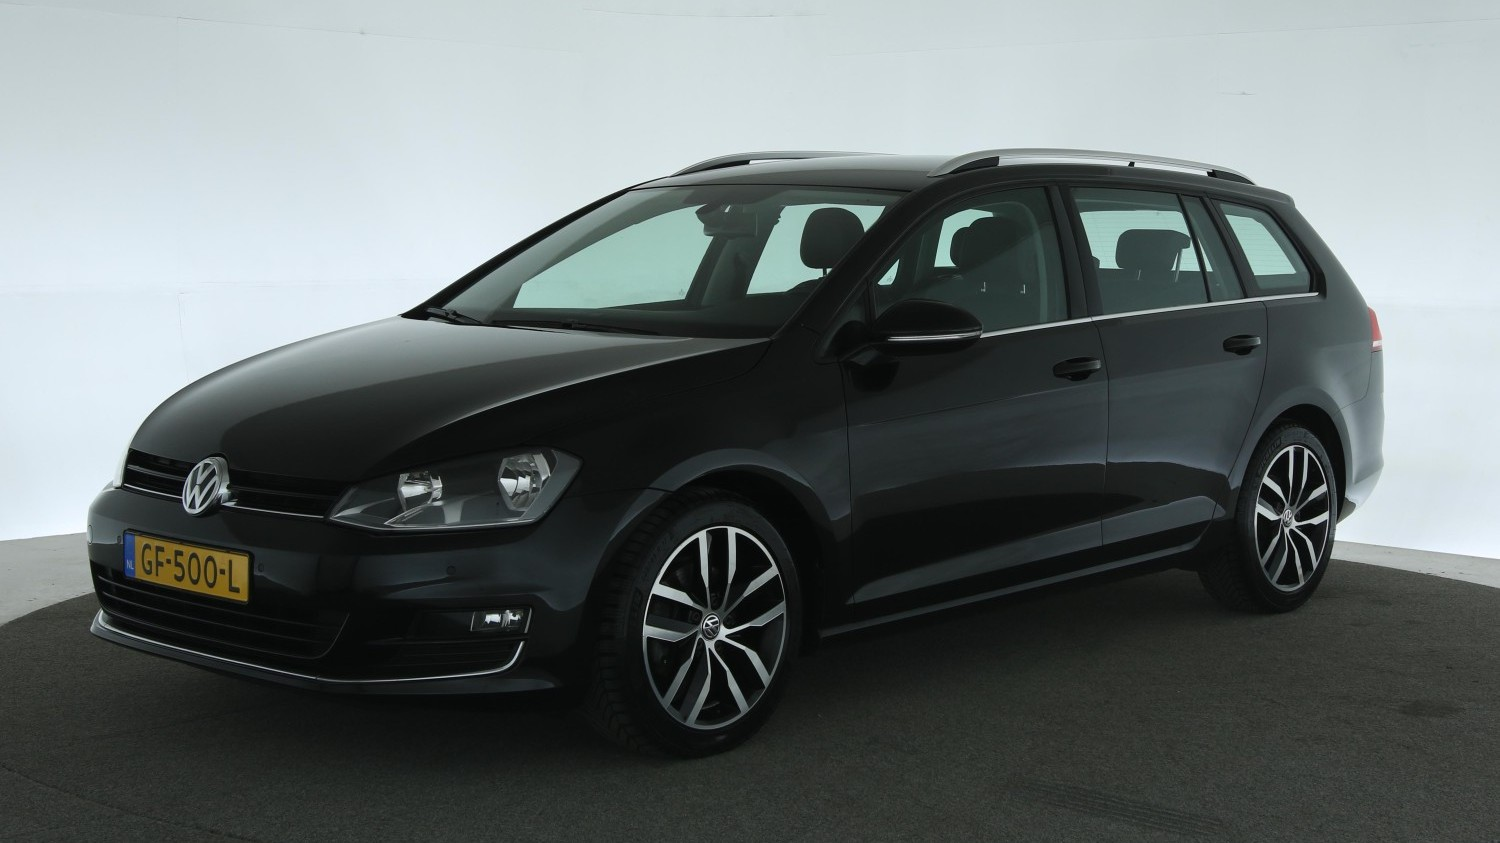 Volkswagen Golf Station 2015 GF-500-L 1